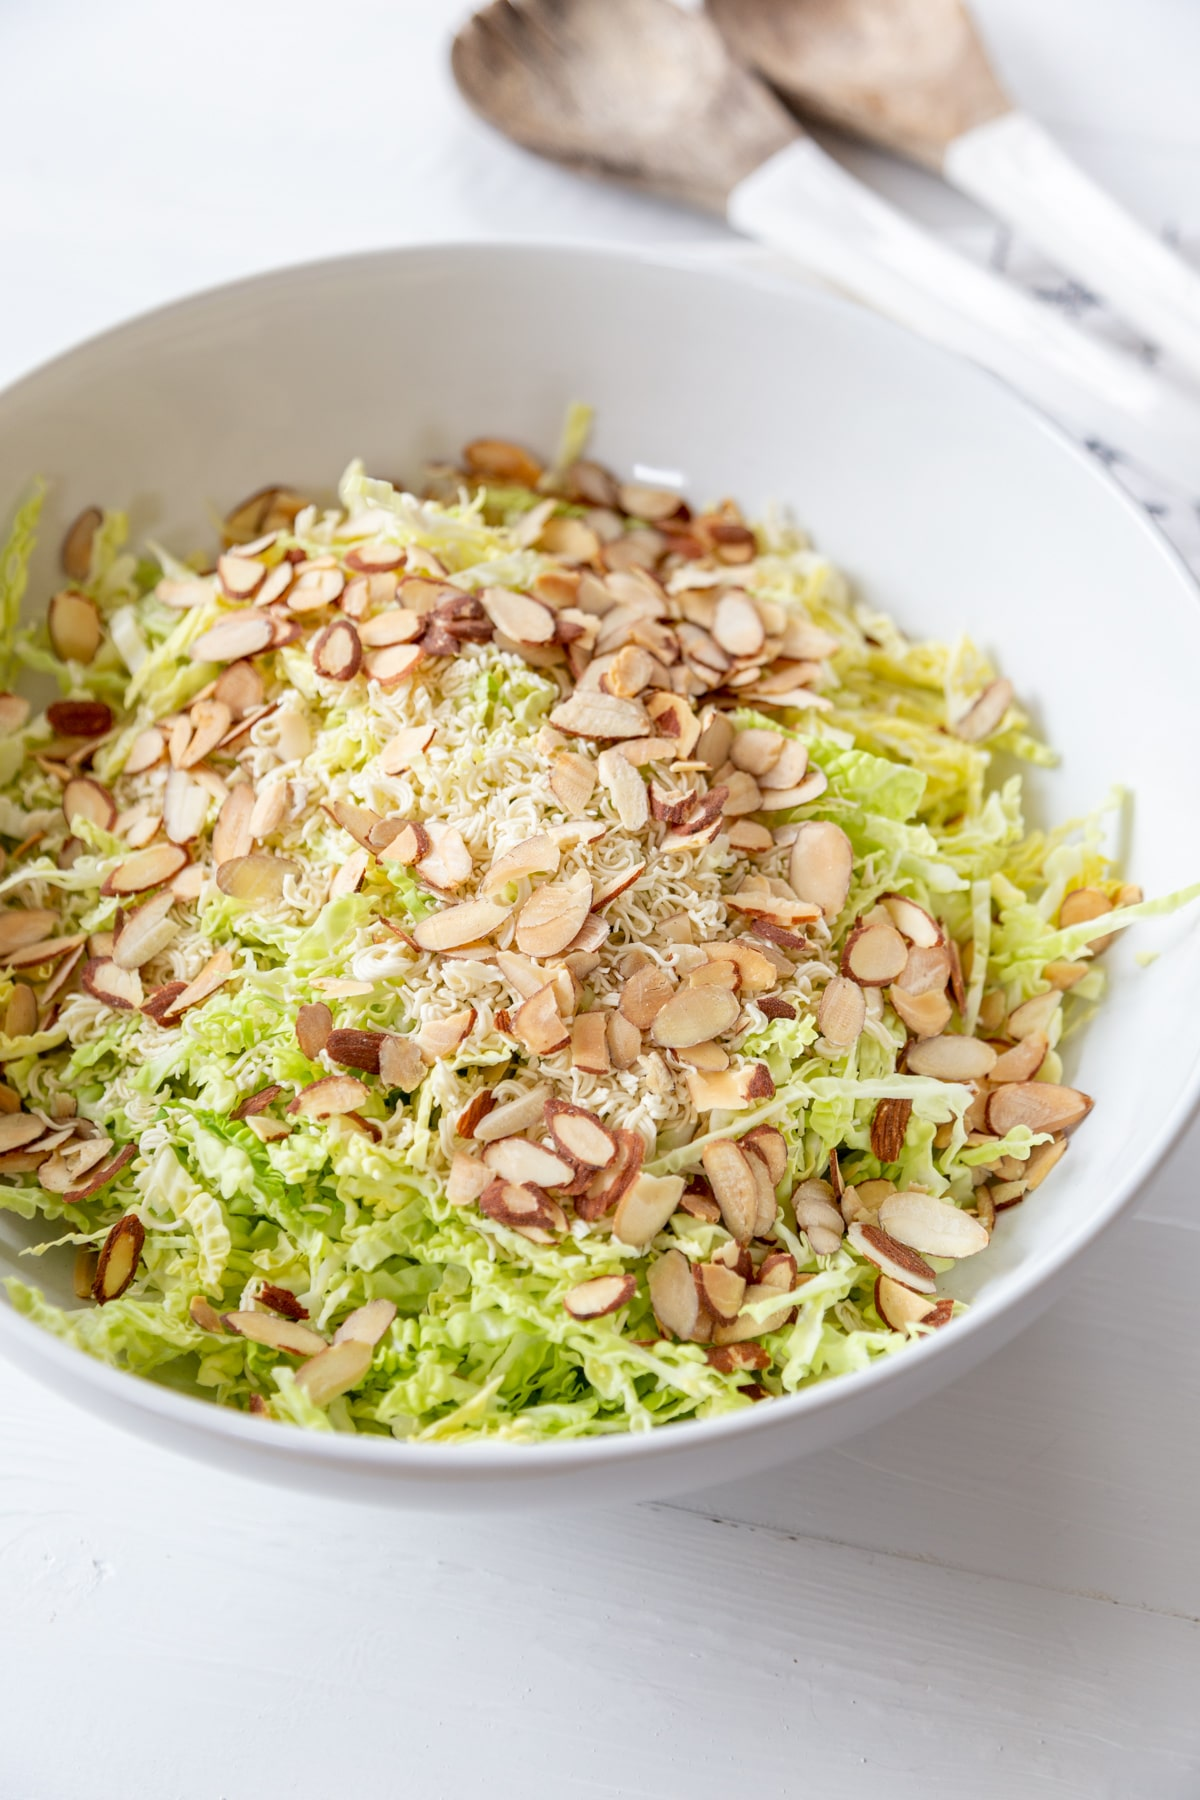 A white bowl with shredded green cabbage and toasted slivered almonds on top of it and a white and wood spoon and fork on the table next to the bowl.